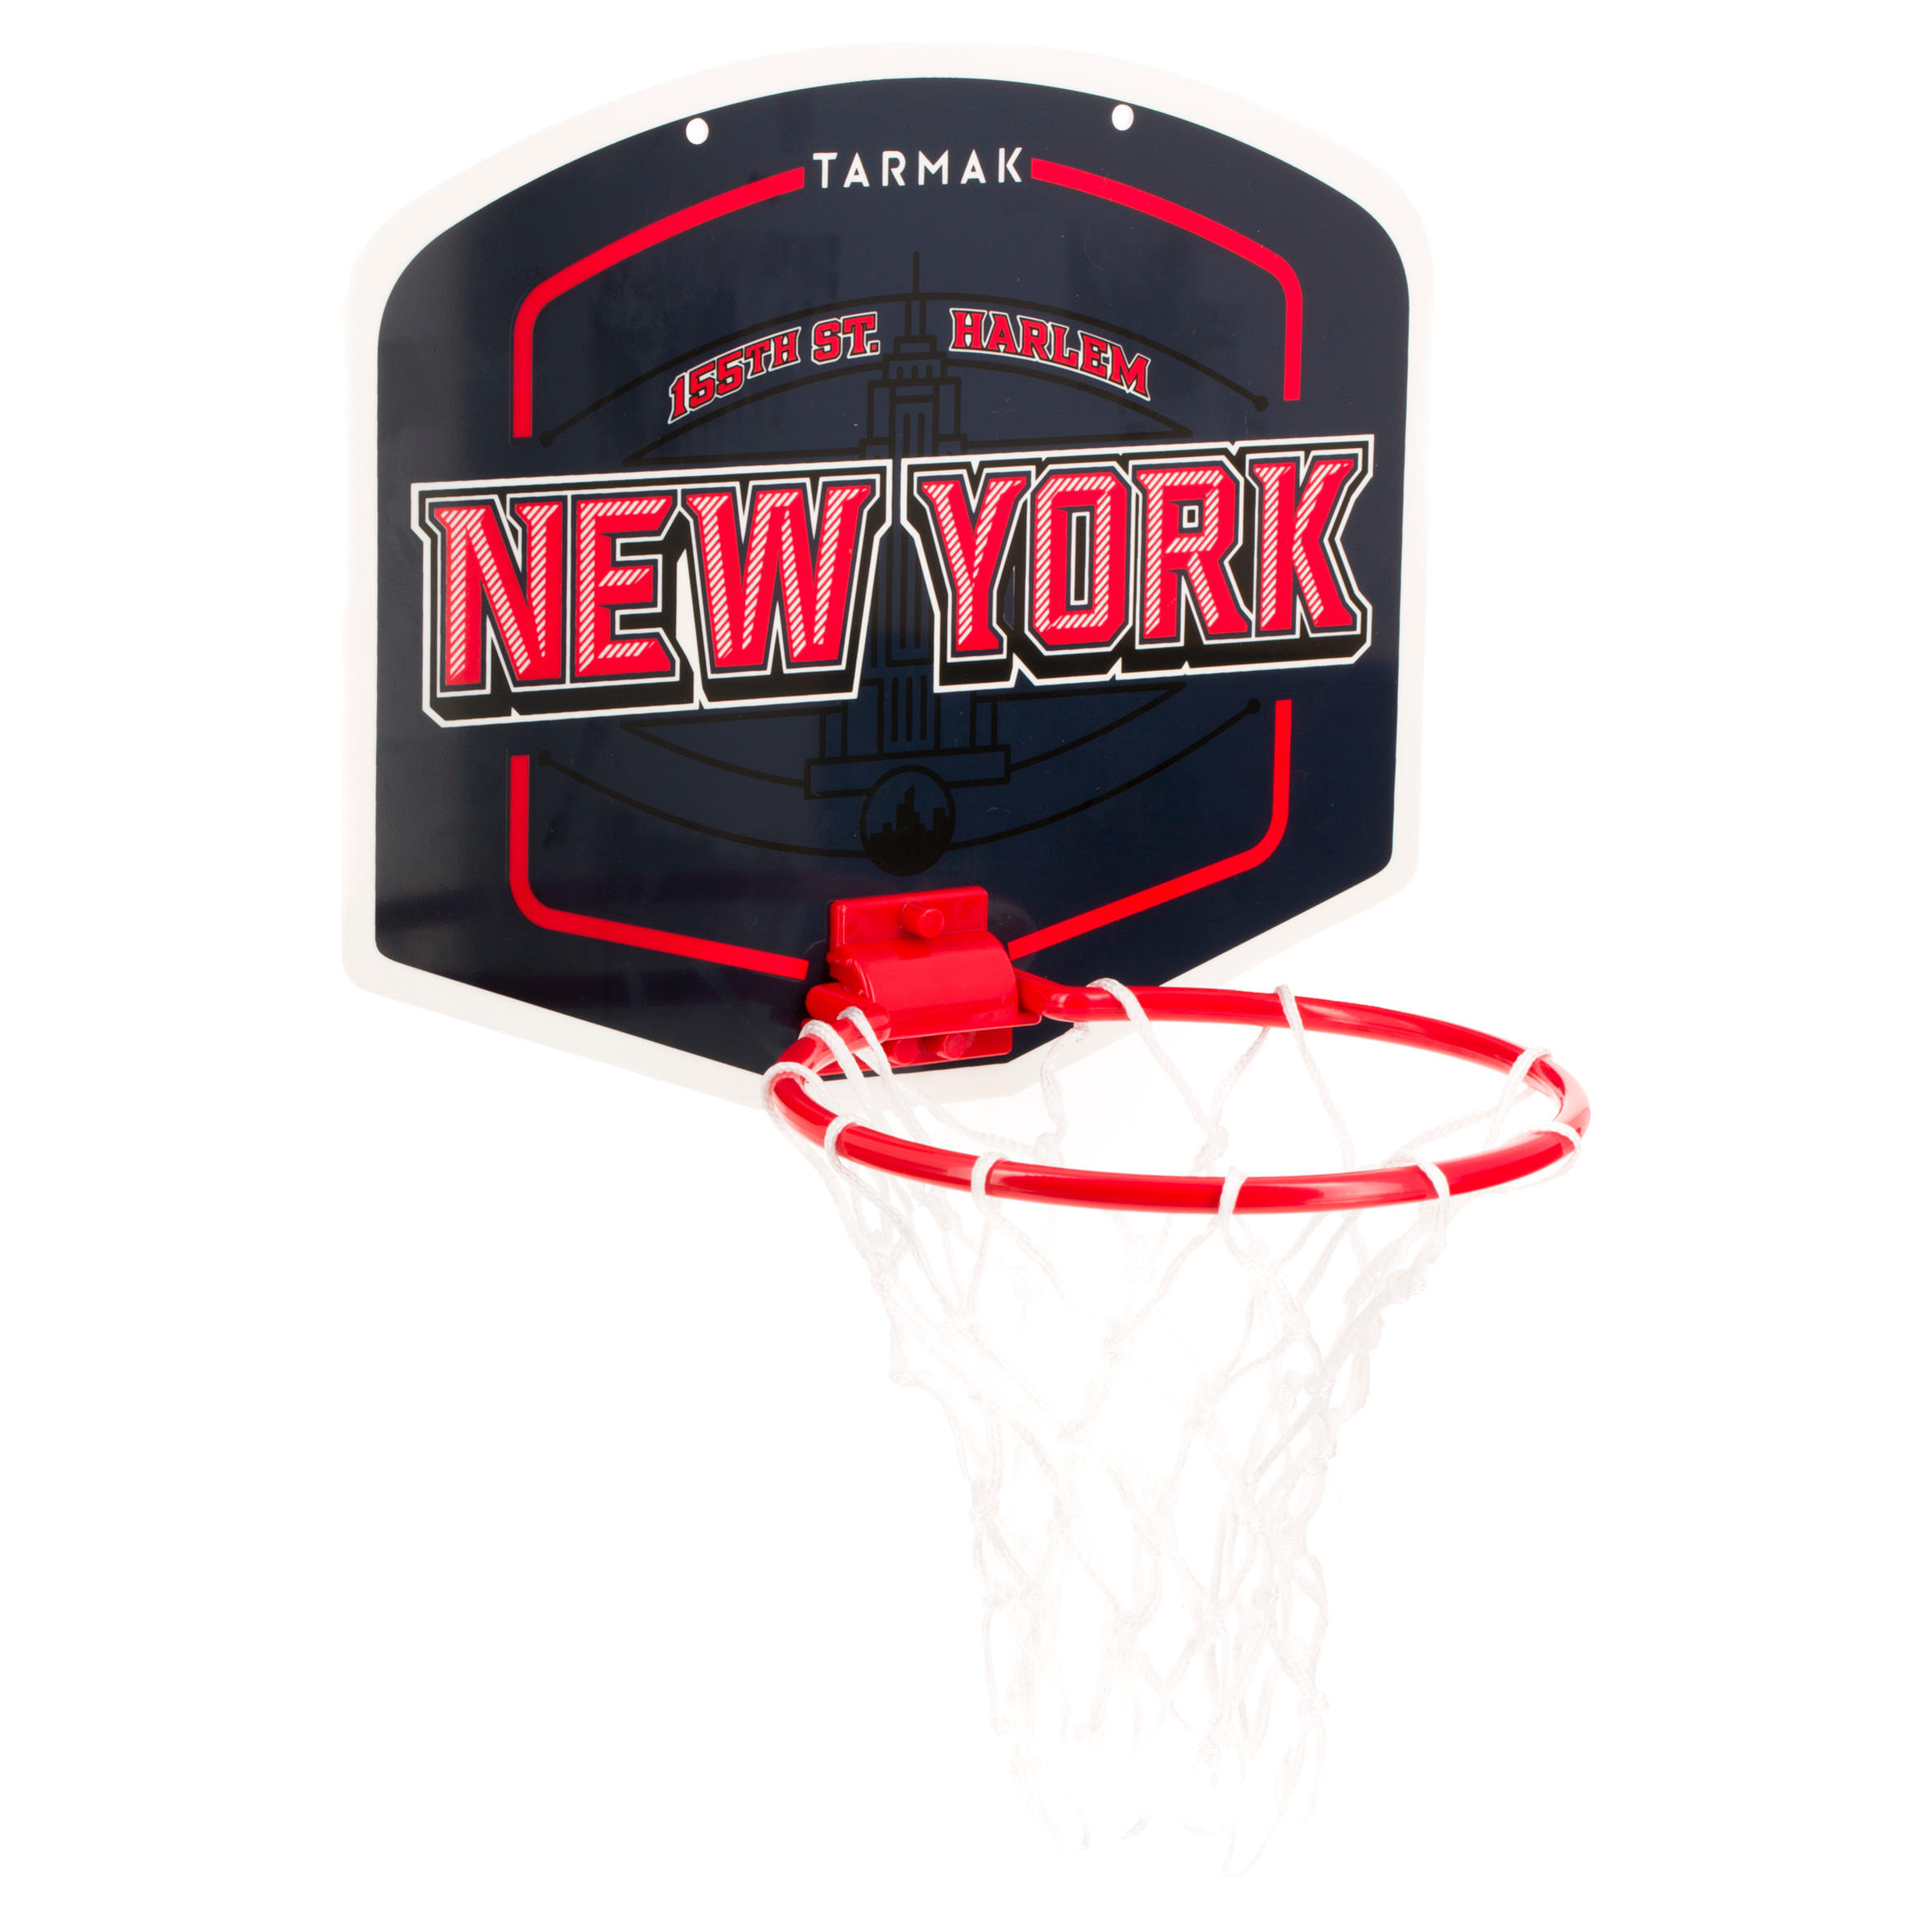 Mini B Kids'/Adults Mini Basketball Hoop - Blue/New YorkBall included.